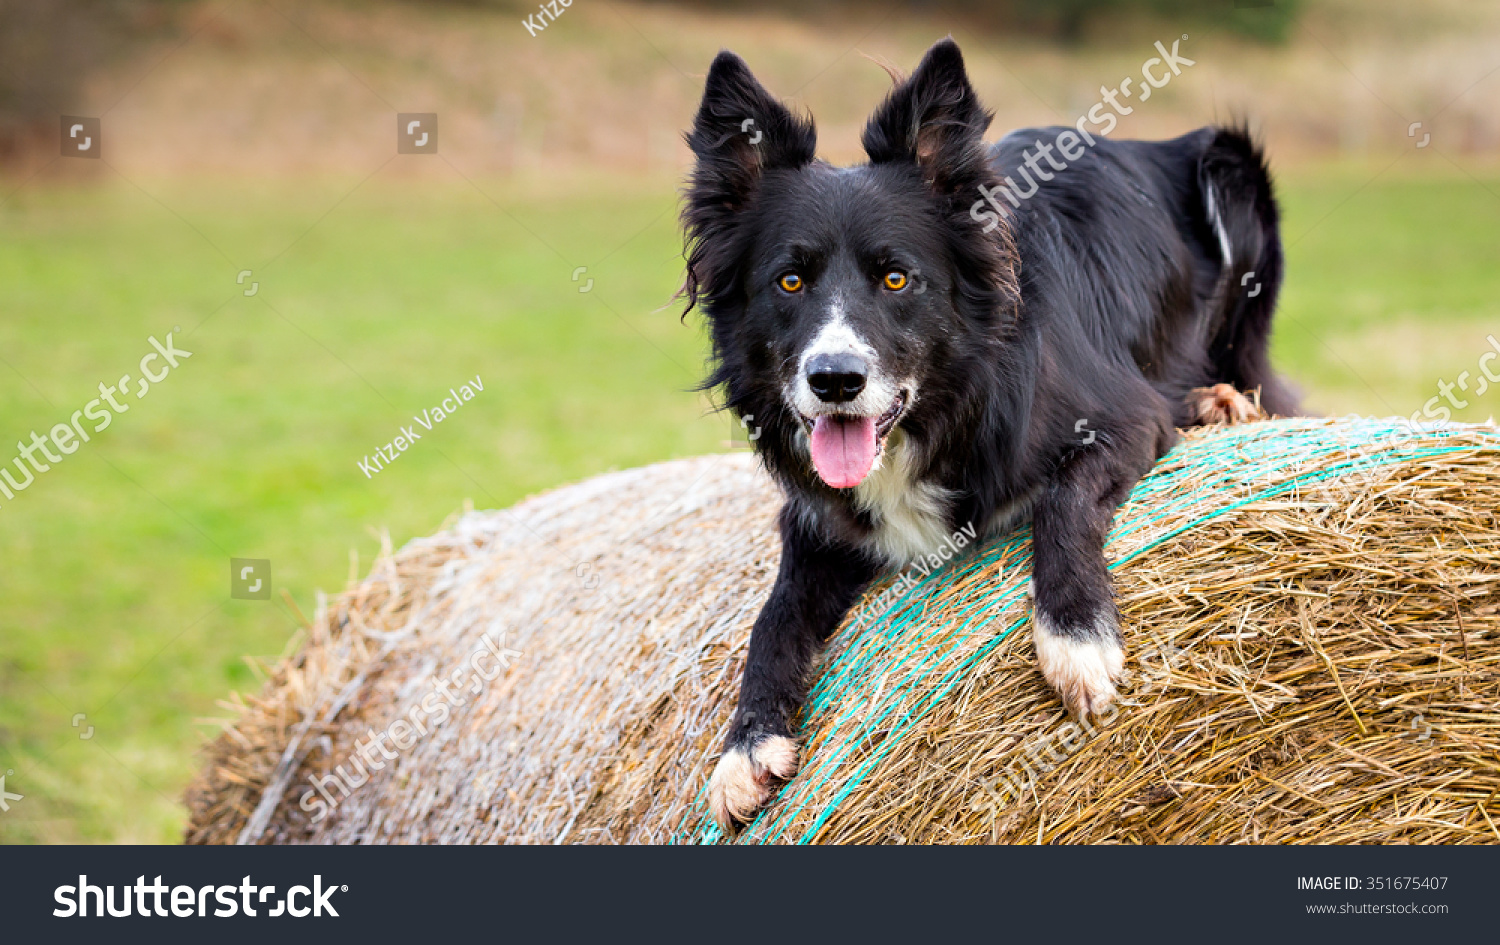 Male Border Collie dog on haystack. Photograph with space for your text on left side #351675407